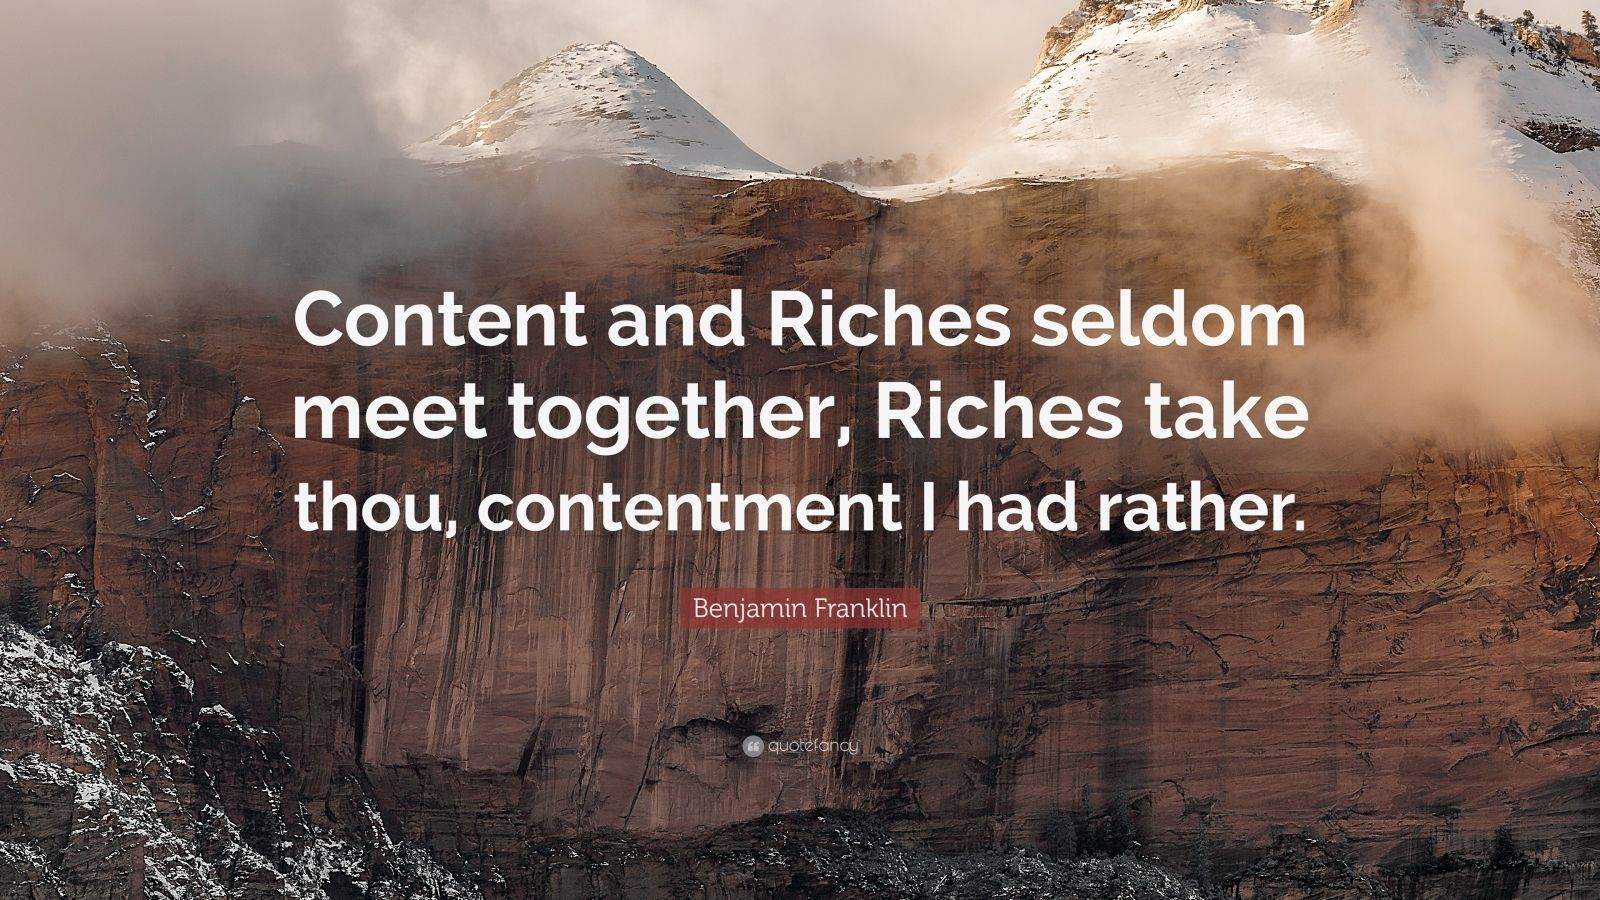 """Benjamin Franklin Quote: """"Content and Riches seldom meet together, Riches take thou, contentment I had rather."""""""